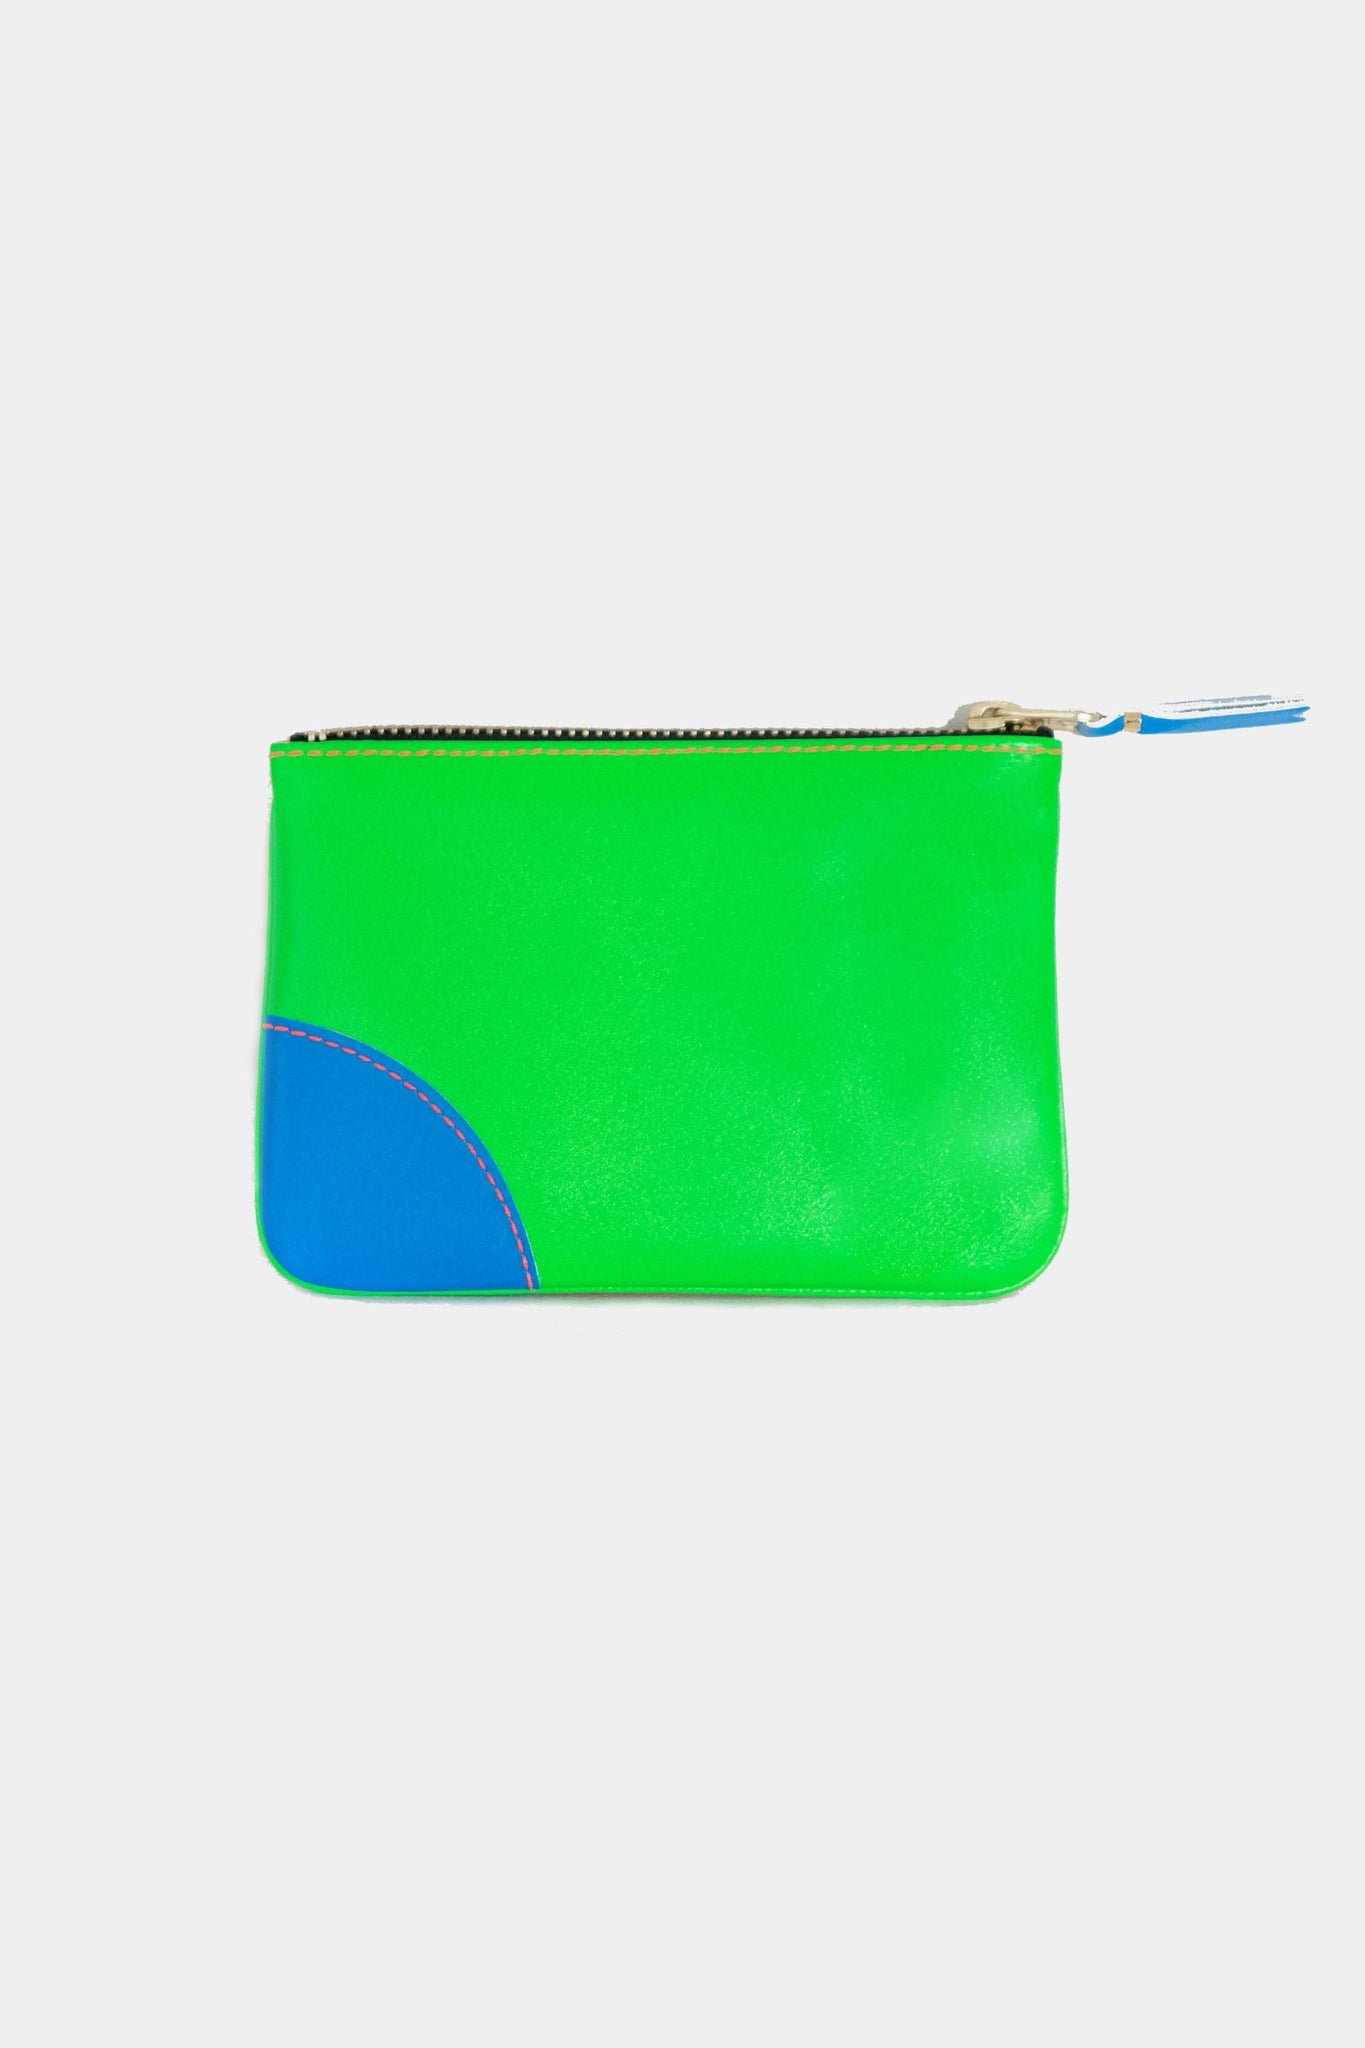 super fluo pouch, green and orange